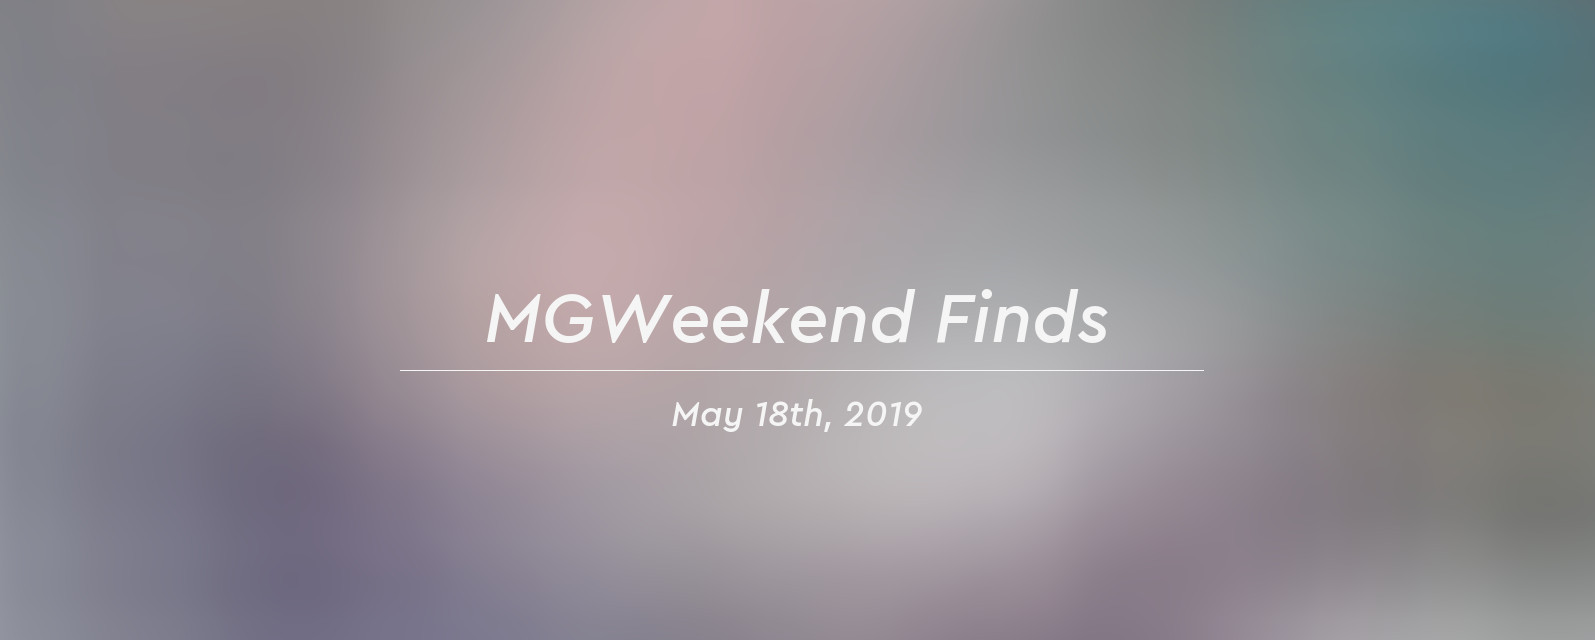 mgw finds 2019 05 18 header